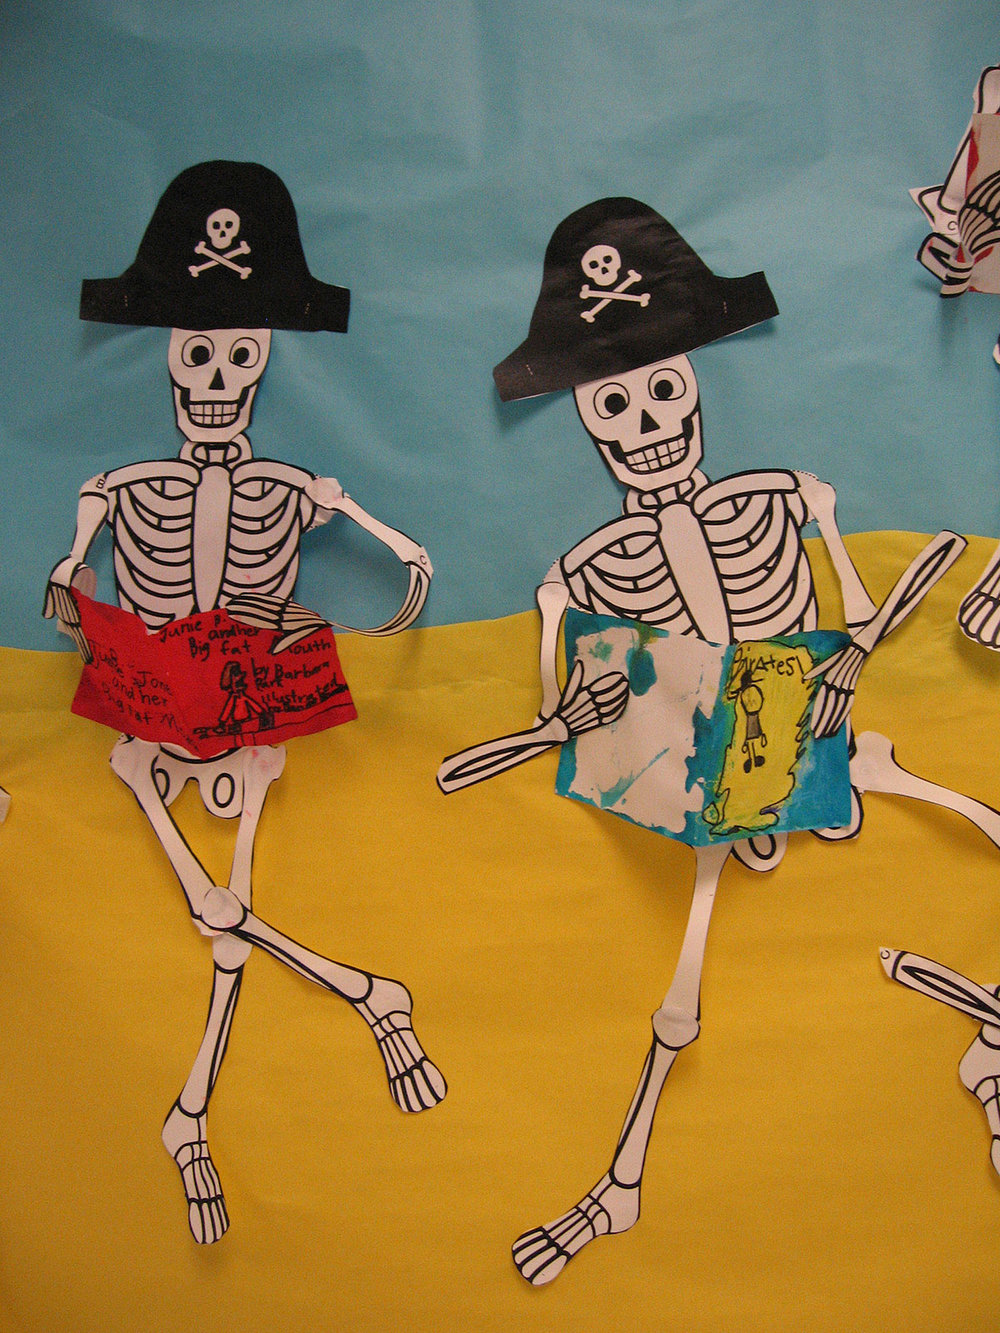 Pirate Skeletons Like To Read